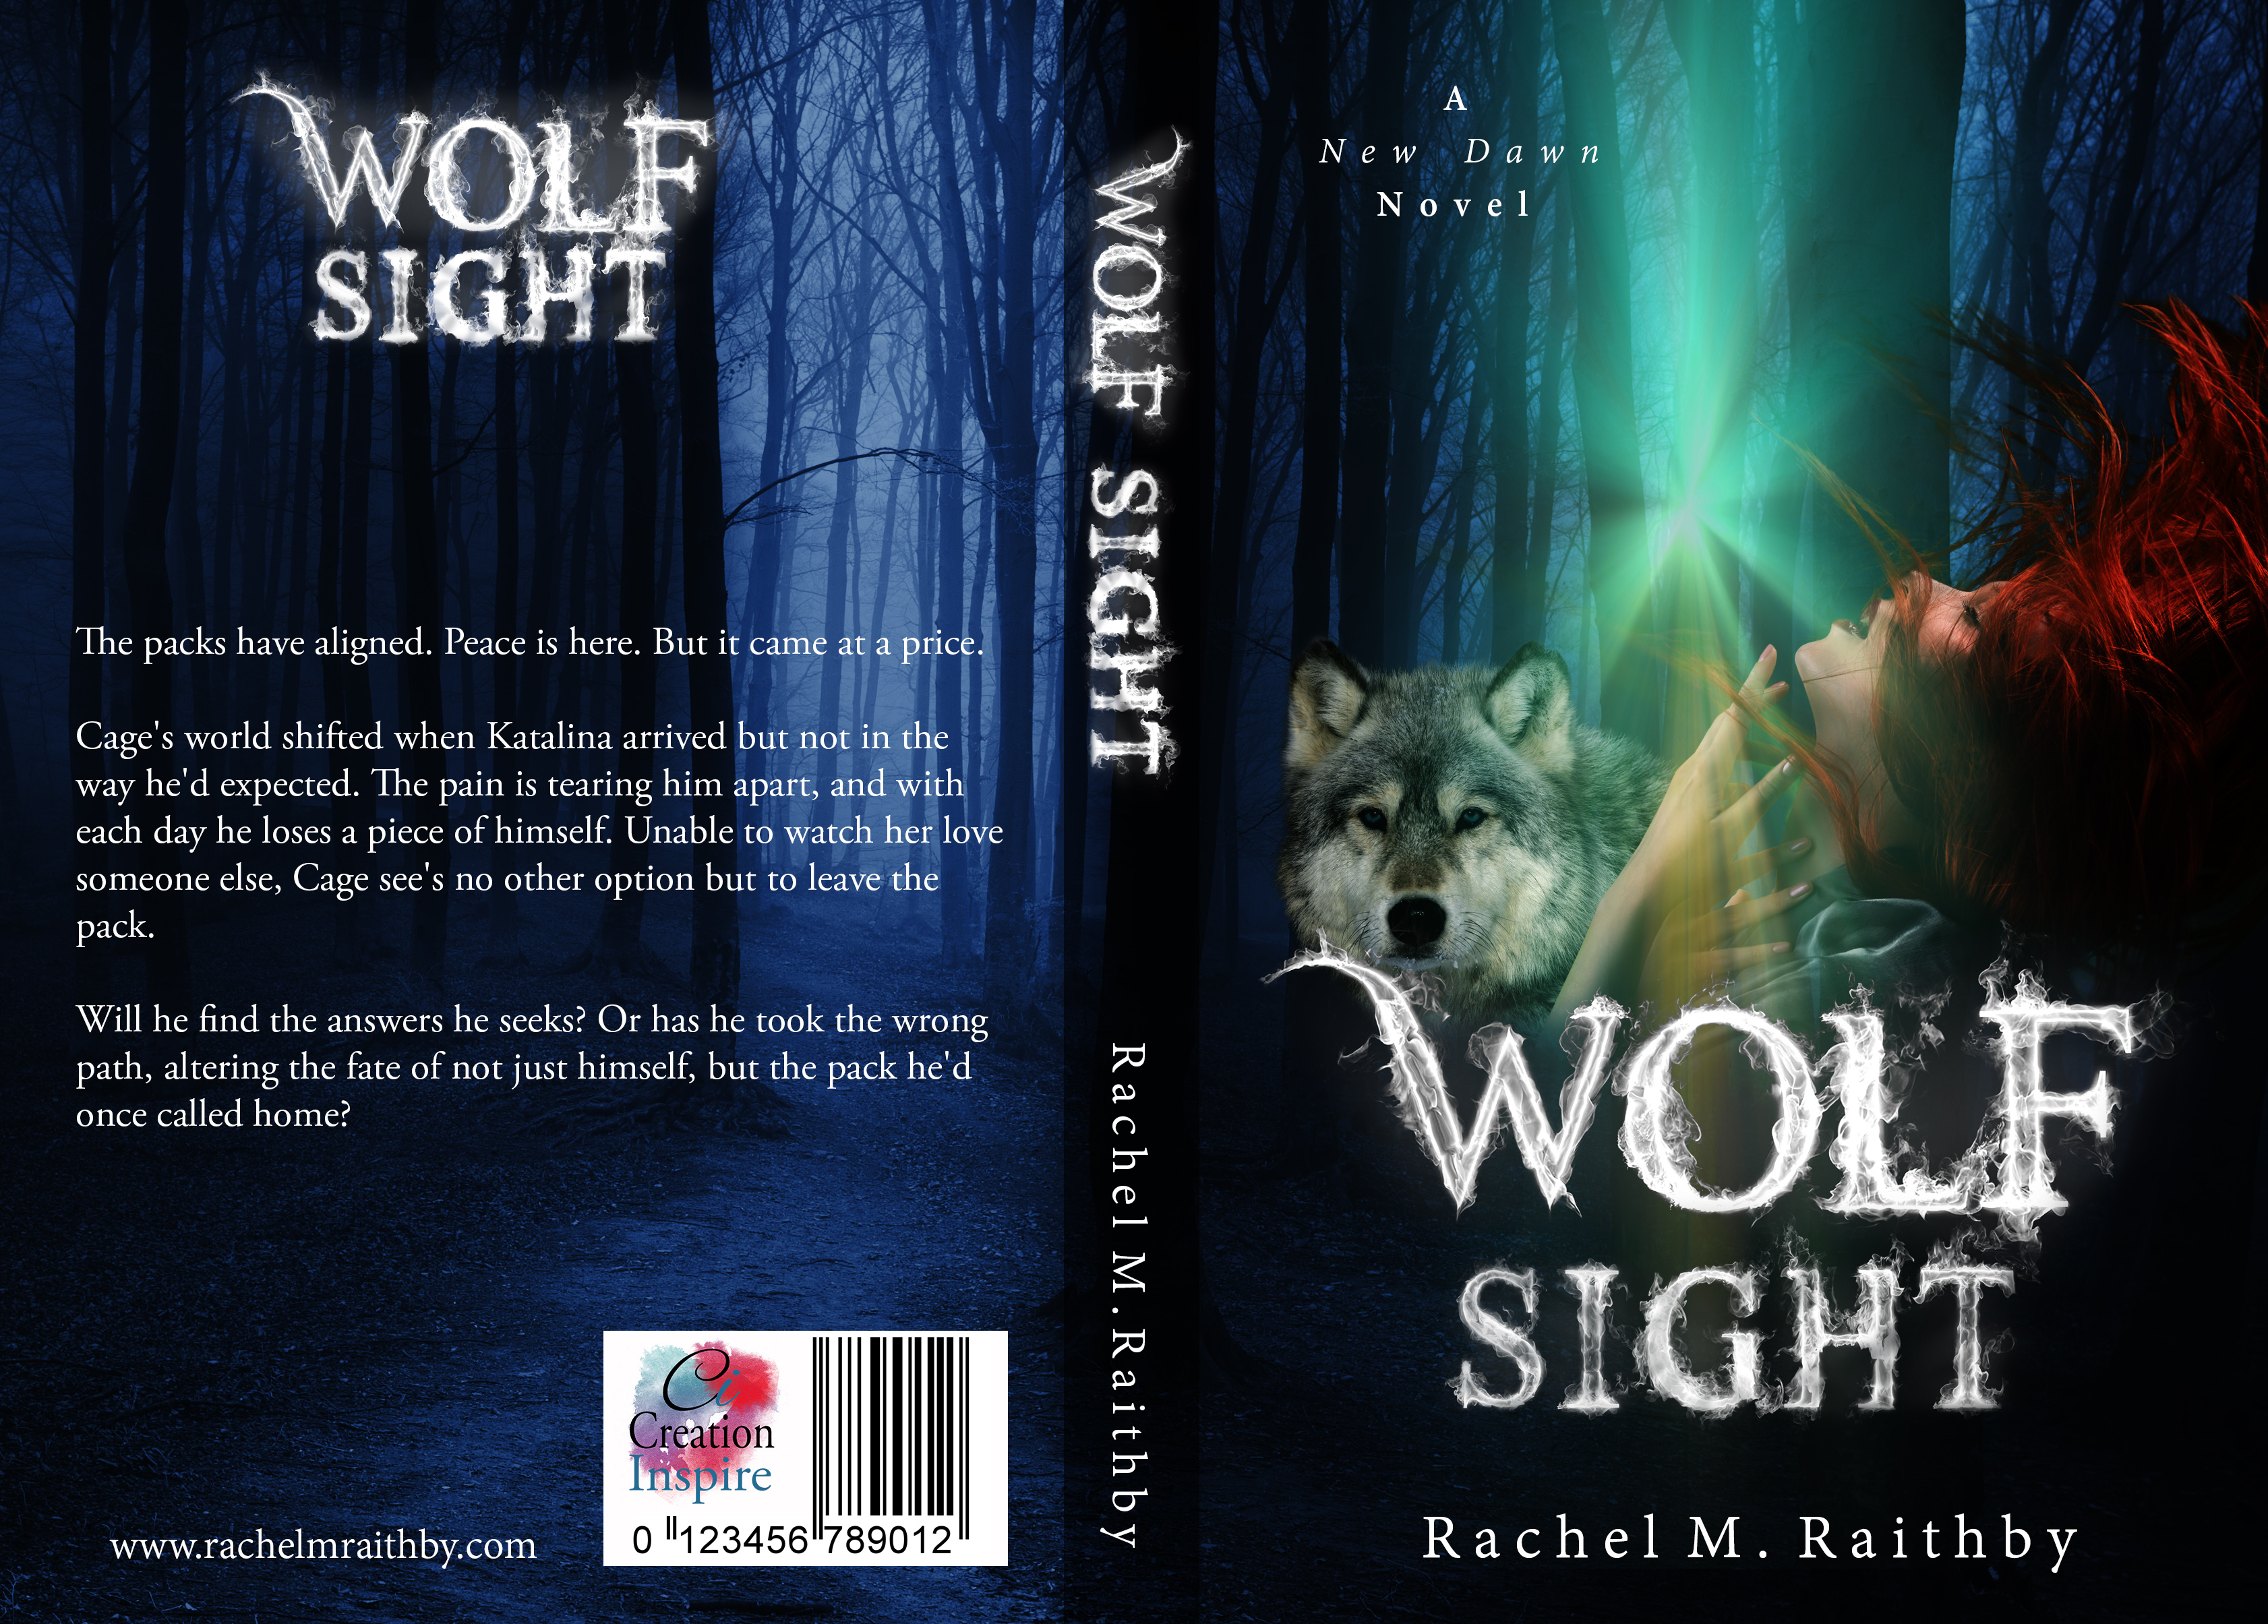 wolfsight-full-jacket